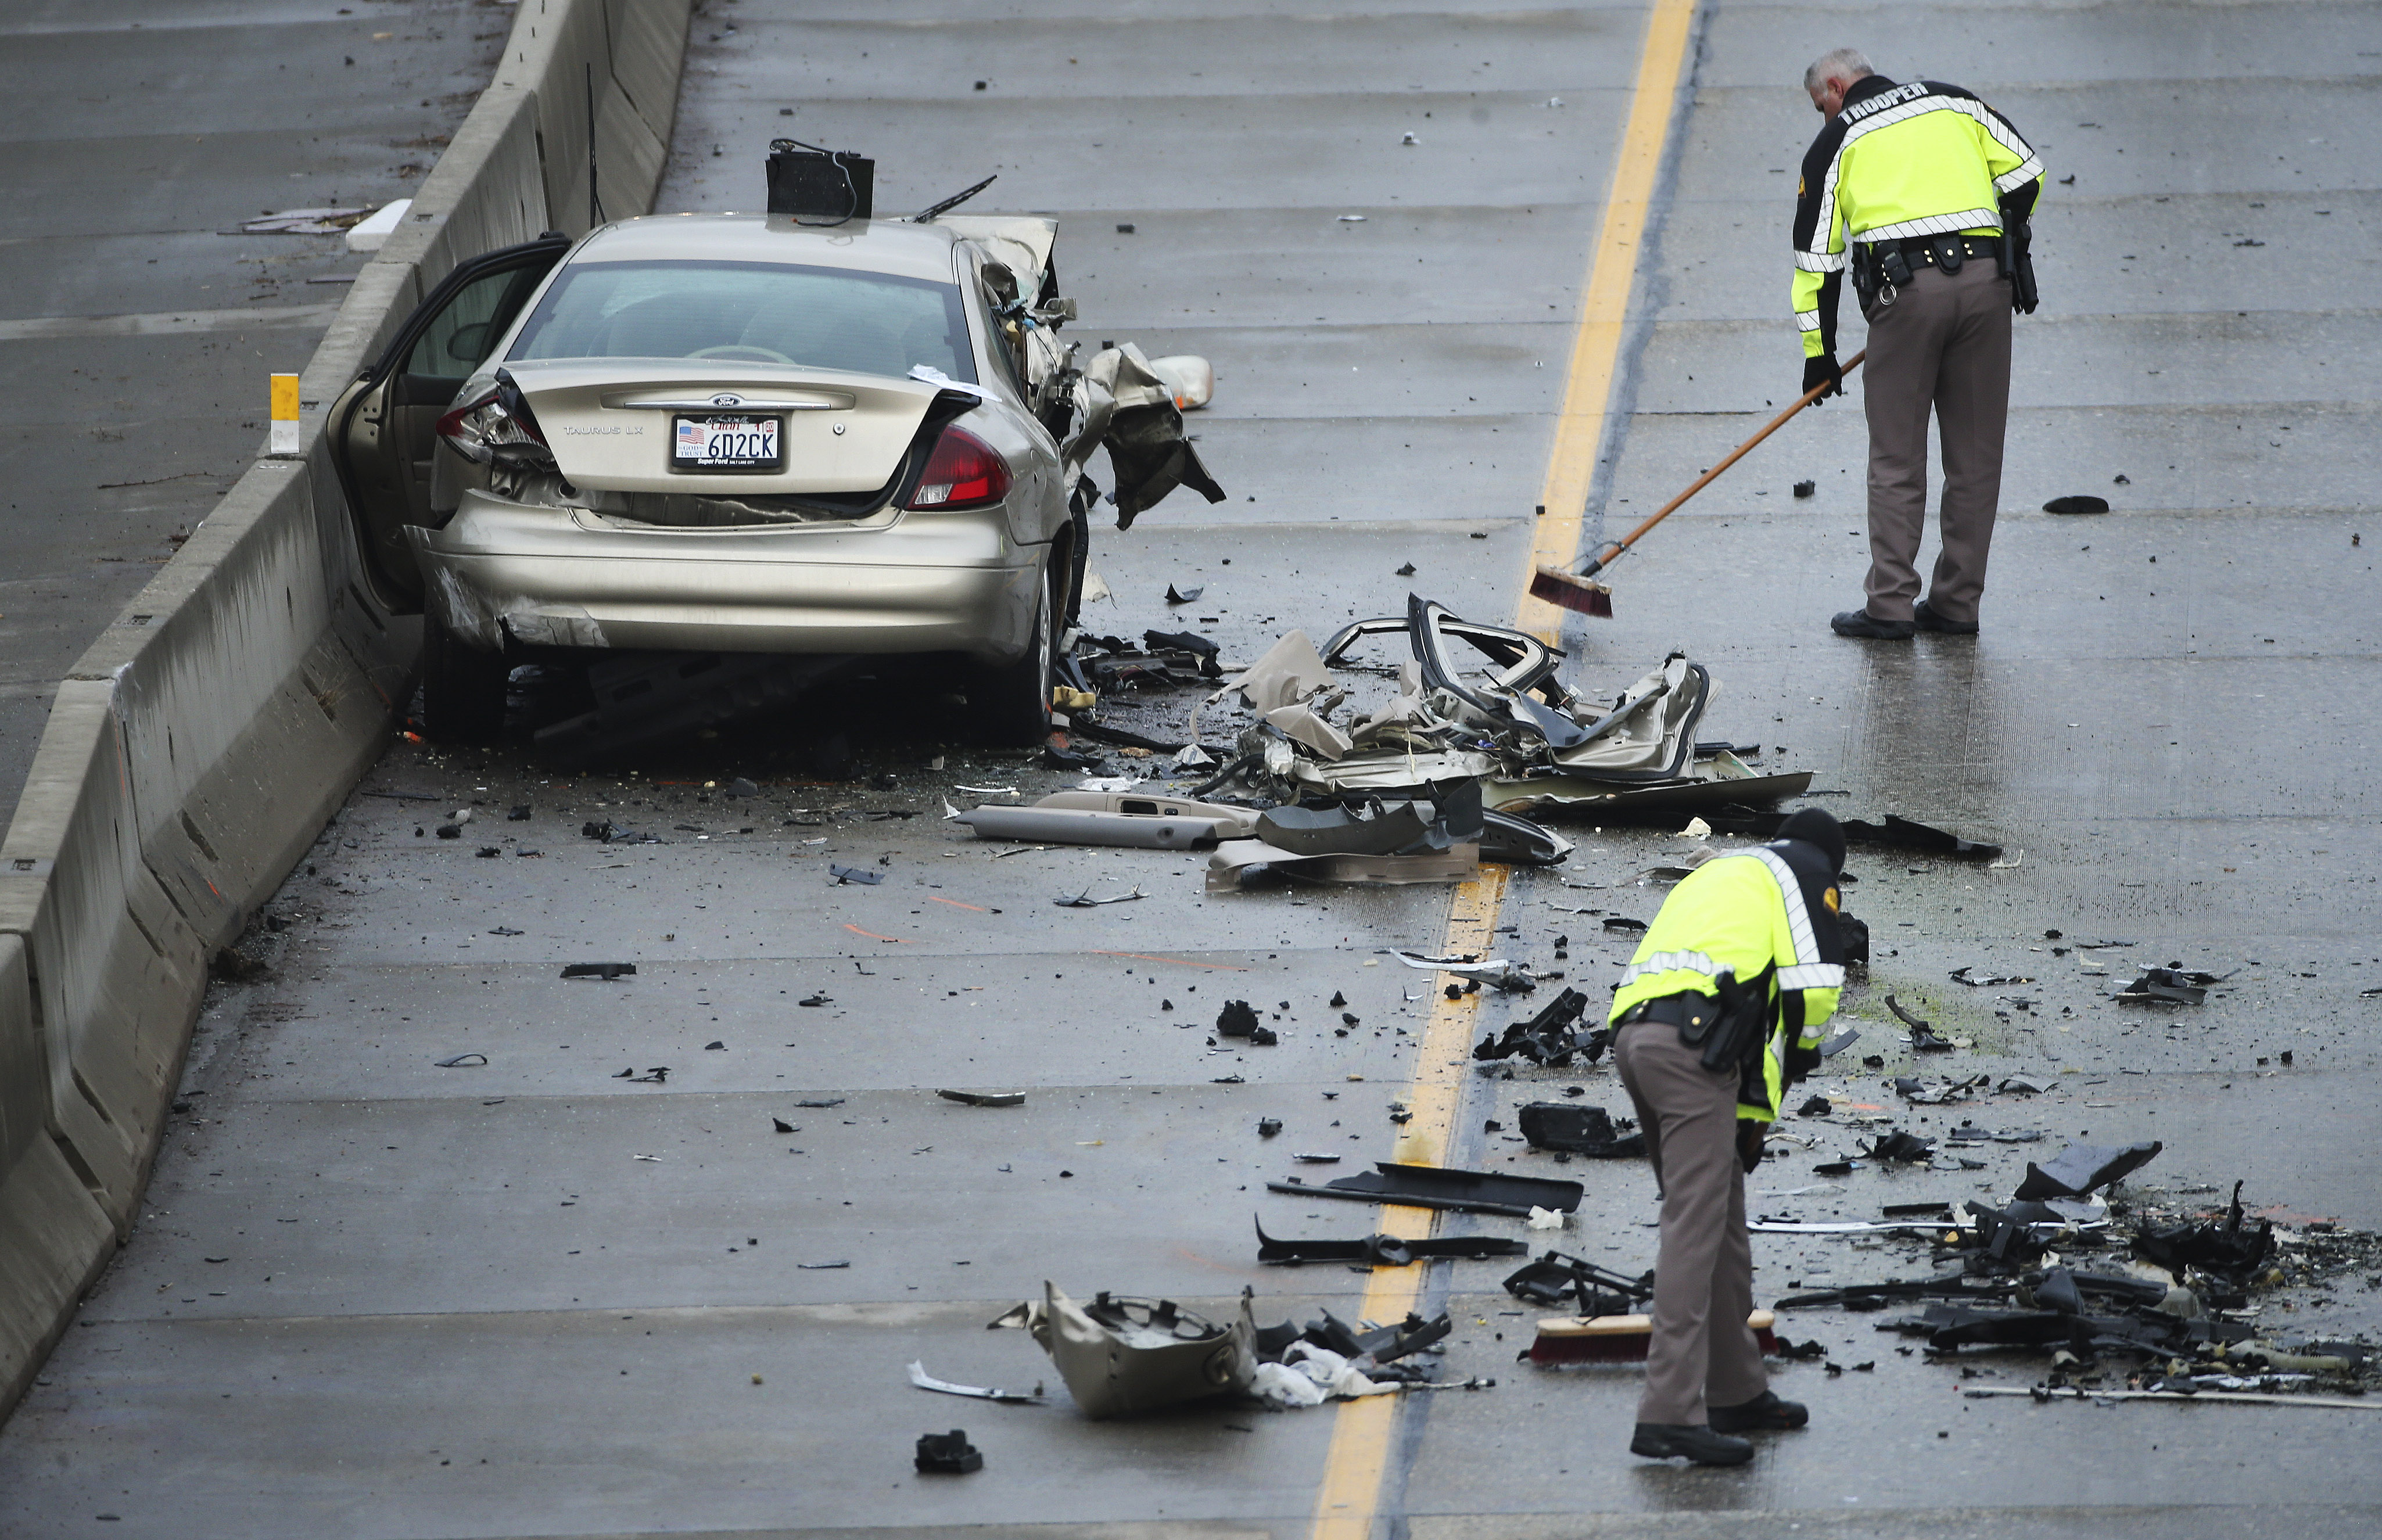 Utah Highway Patrol troops clean up after a double fatal accident due to a wrong-way driver on I-215 near2000 East in Cottonwood Heights on Friday, Jan. 24, 2020.